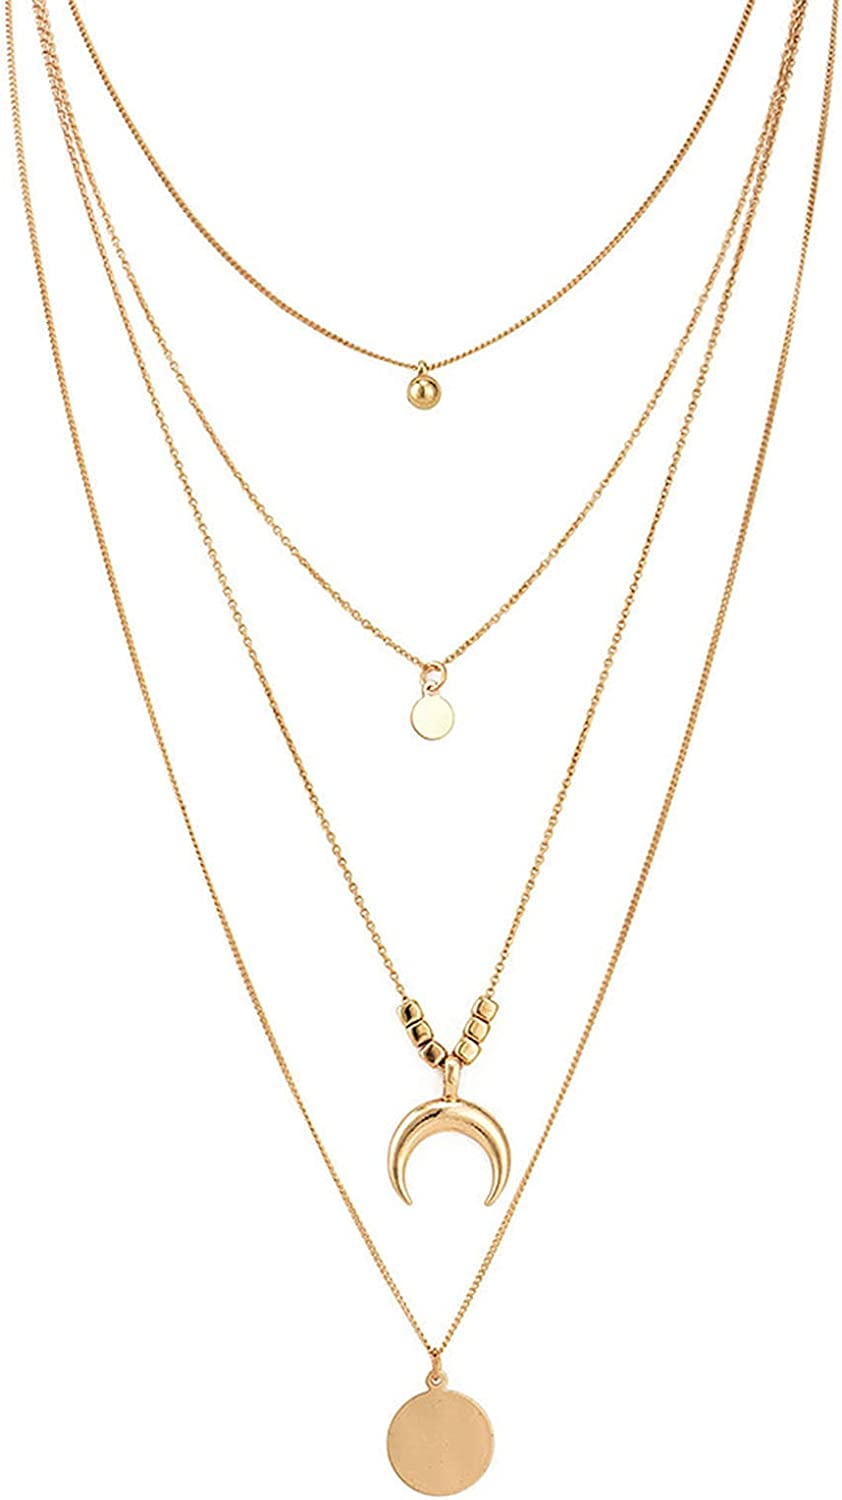 Dainty Necklace for Women,Multilayer Simple Moon Star Sun Coin Pendant Chain Clavicle Necklace Jewelry Accessory Jewelry Accessories for Teen Girls